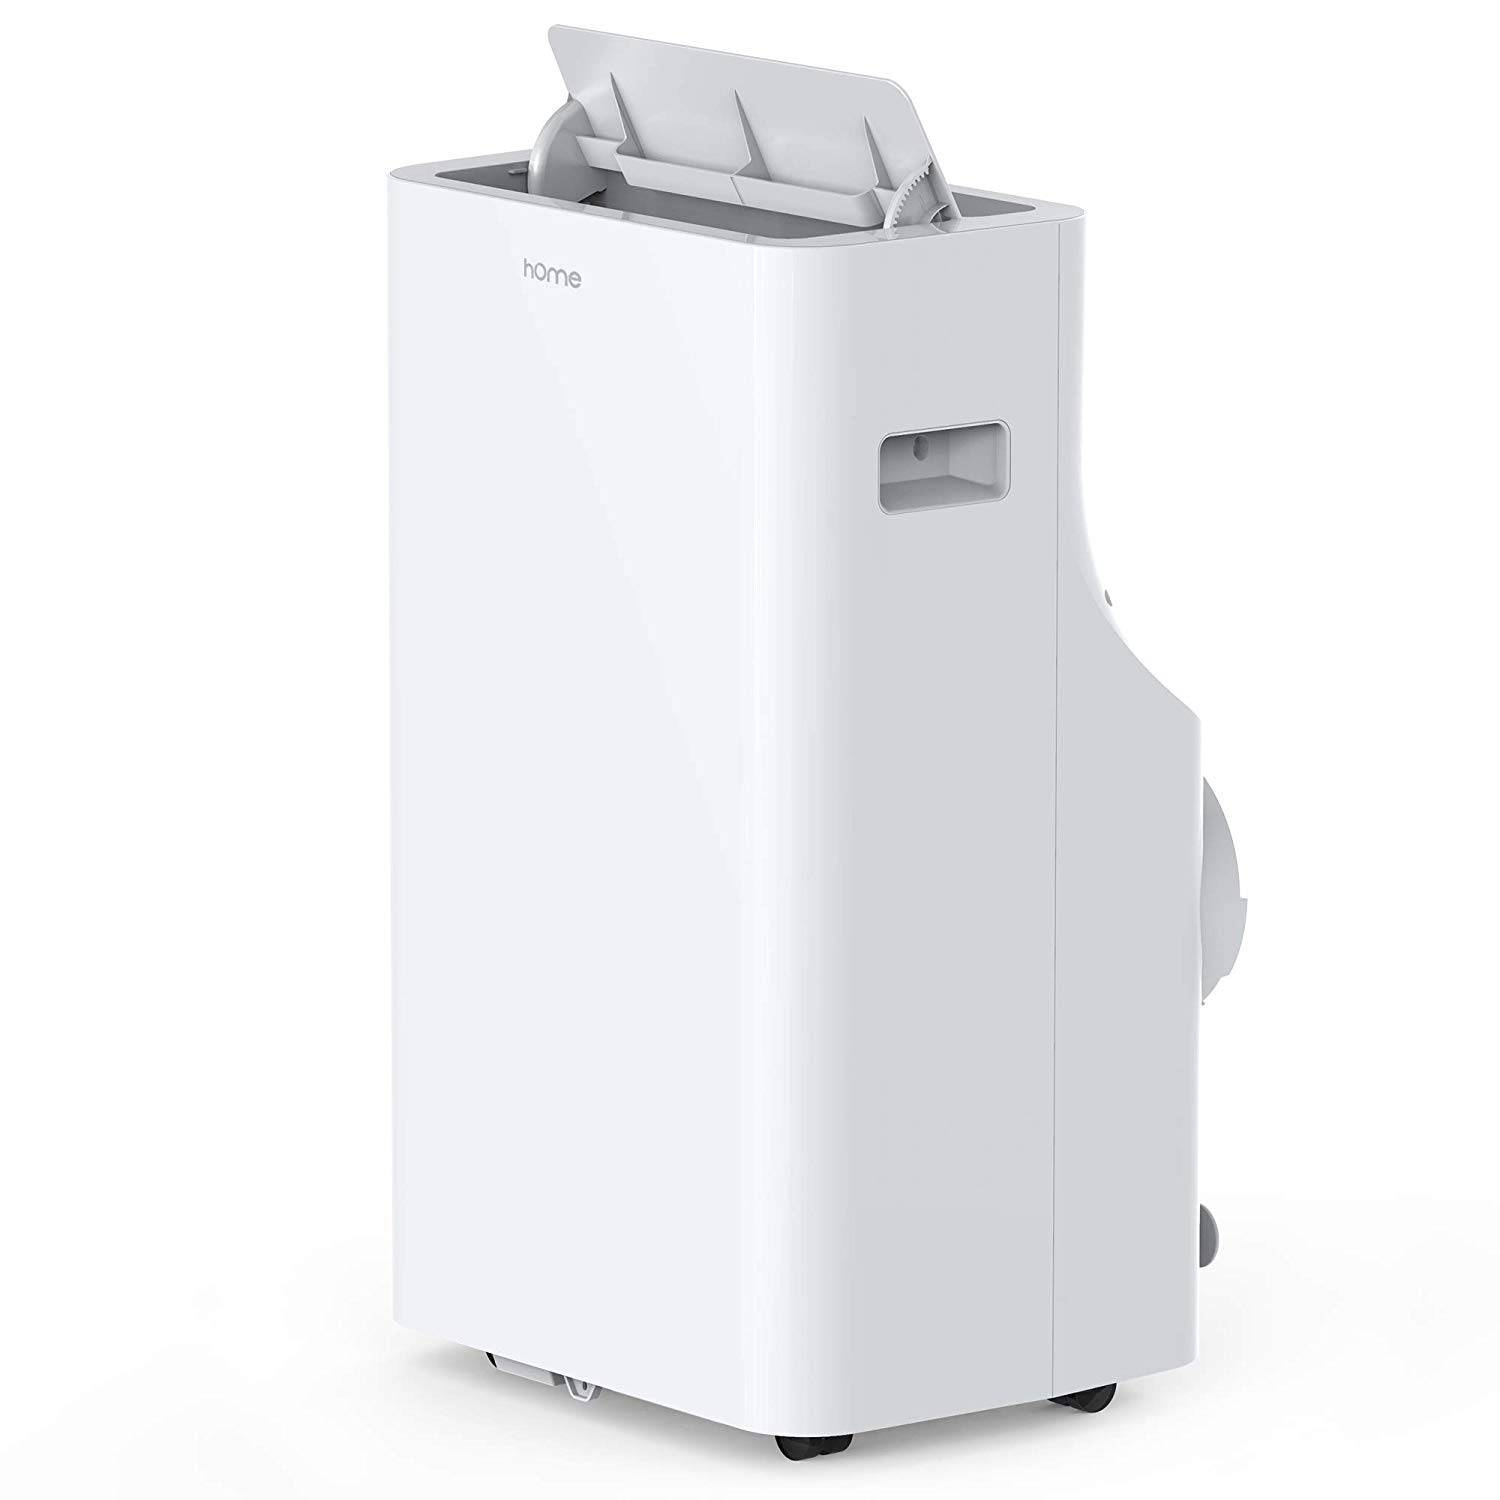 Quietest Portable Air Conditioners To Stay Cool This Summer